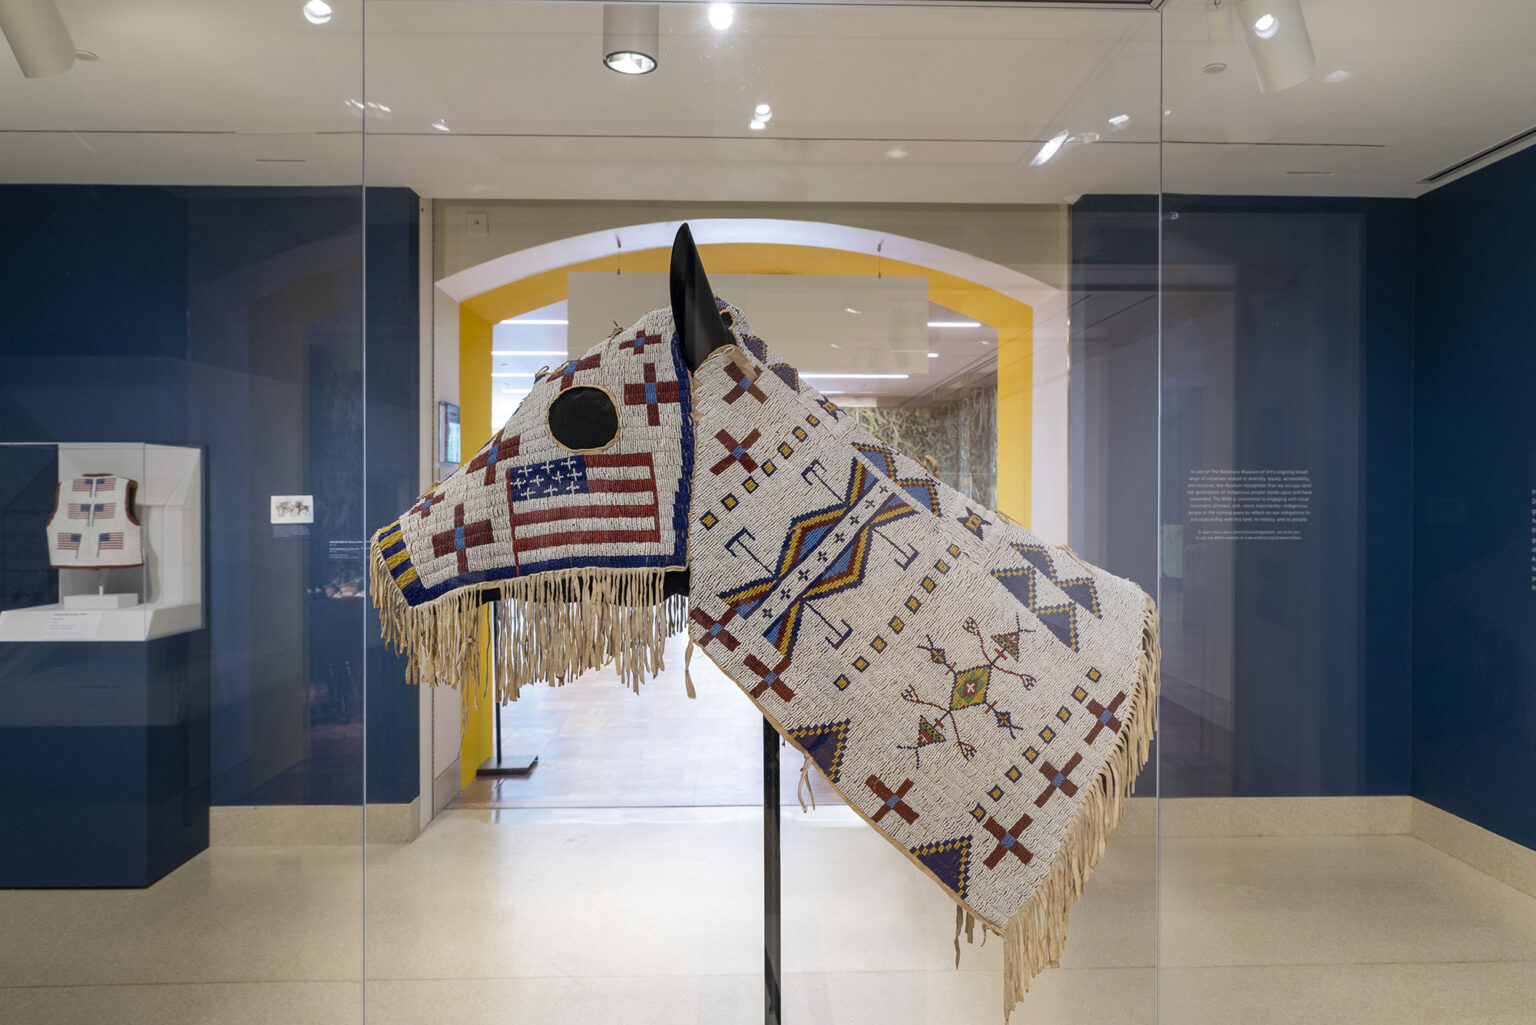 Image: Artist unidentified. Horse Mask. 1900. Eugene and Clare Thaw Collection, Fenimore Art Museum, Cooperstown, NY